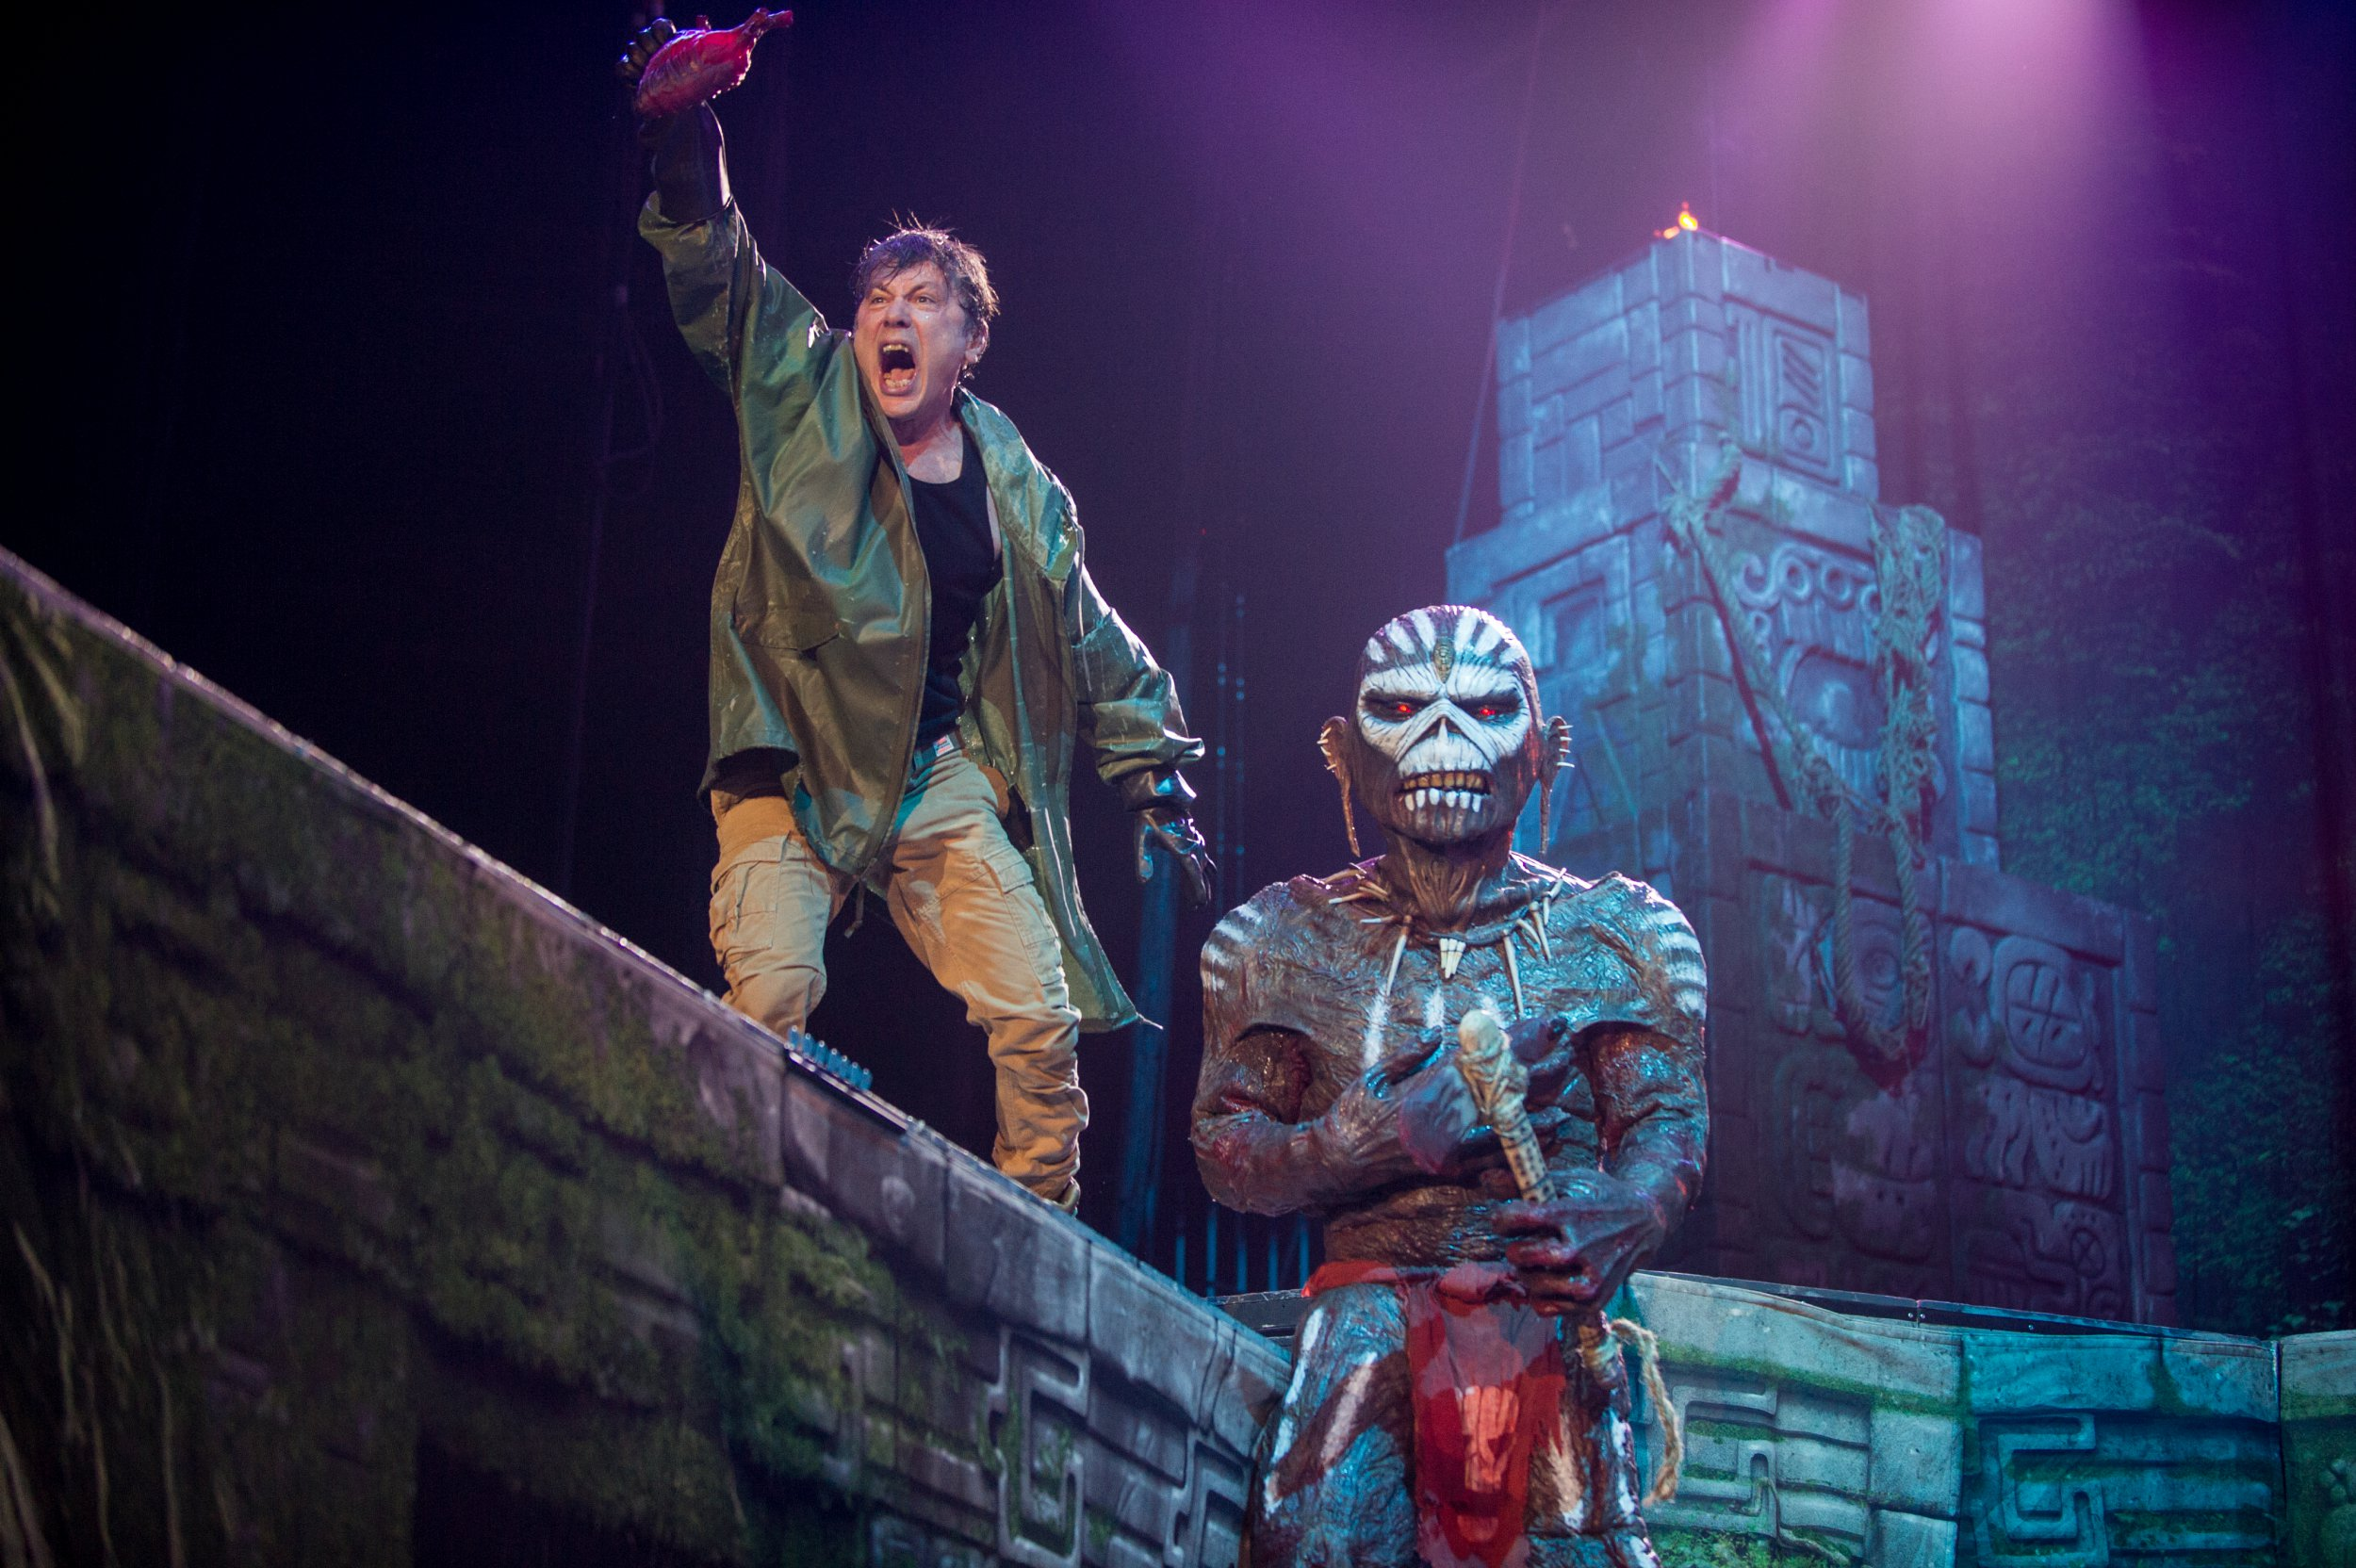 On tour with Iron Maiden: 5 things we learnt about the best British metal band